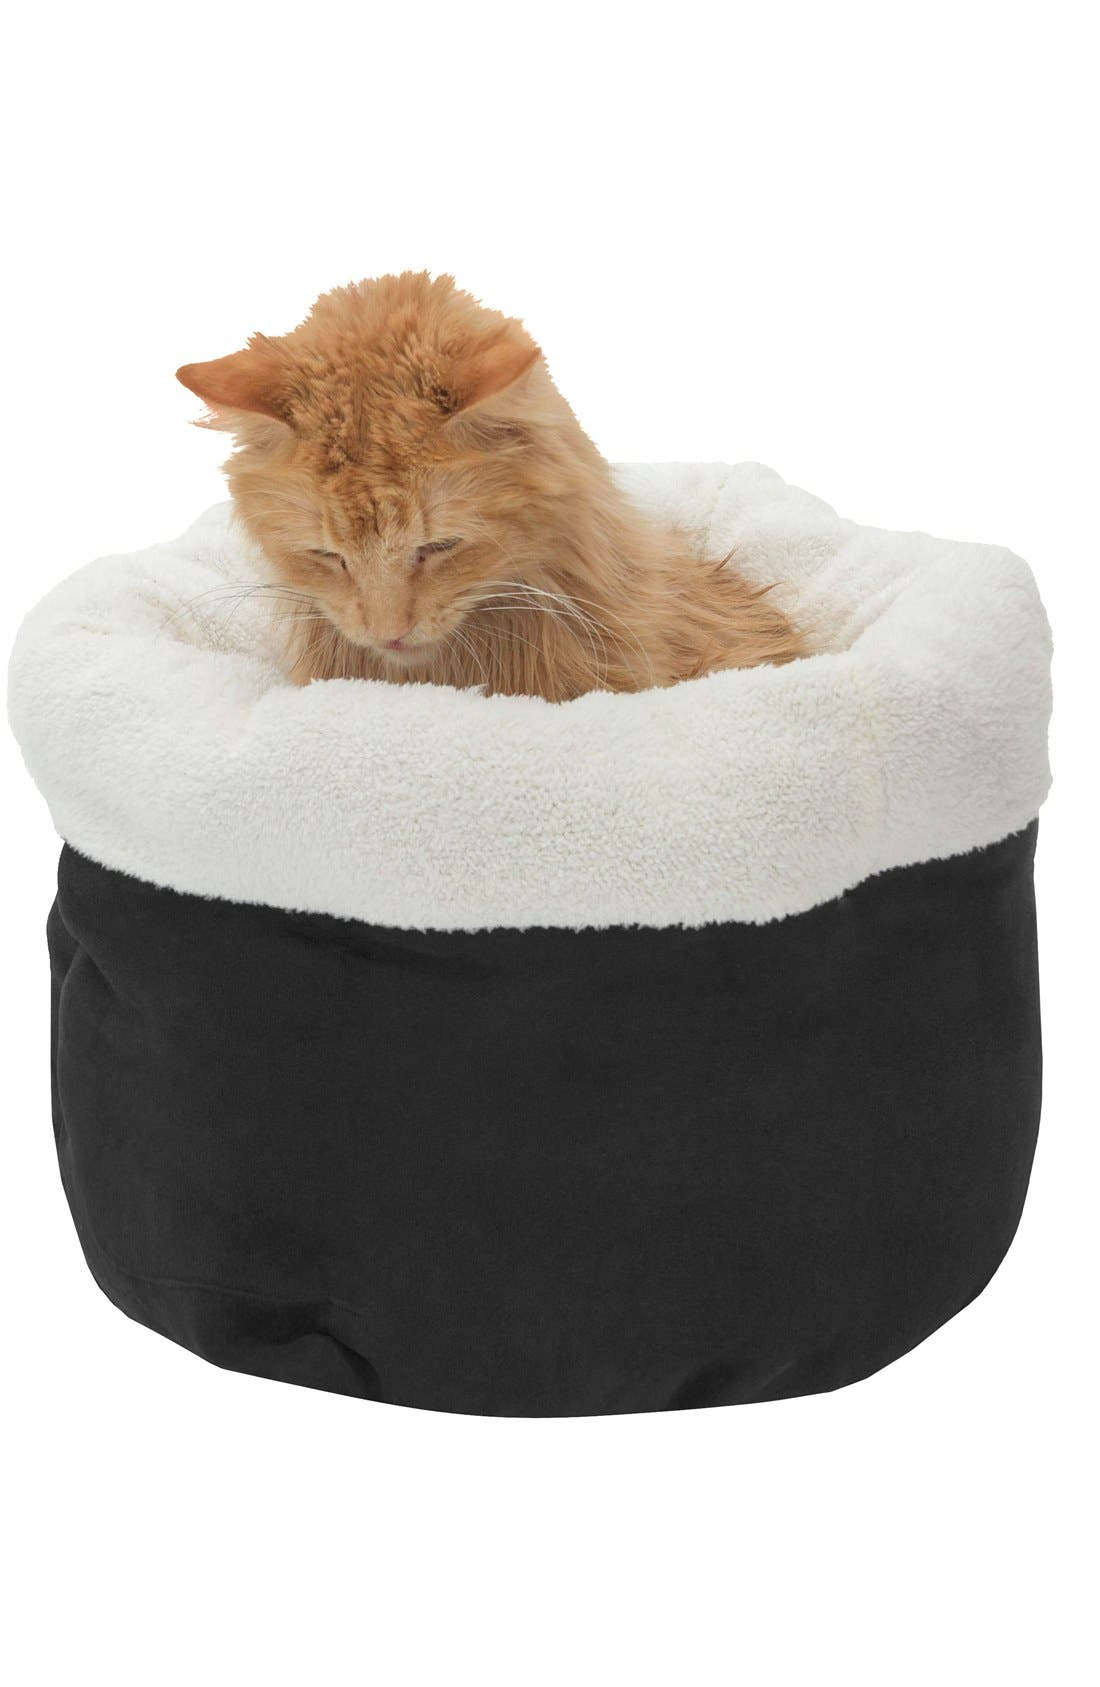 Barclay Pet Bed,                             Main thumbnail 1, color,                             001